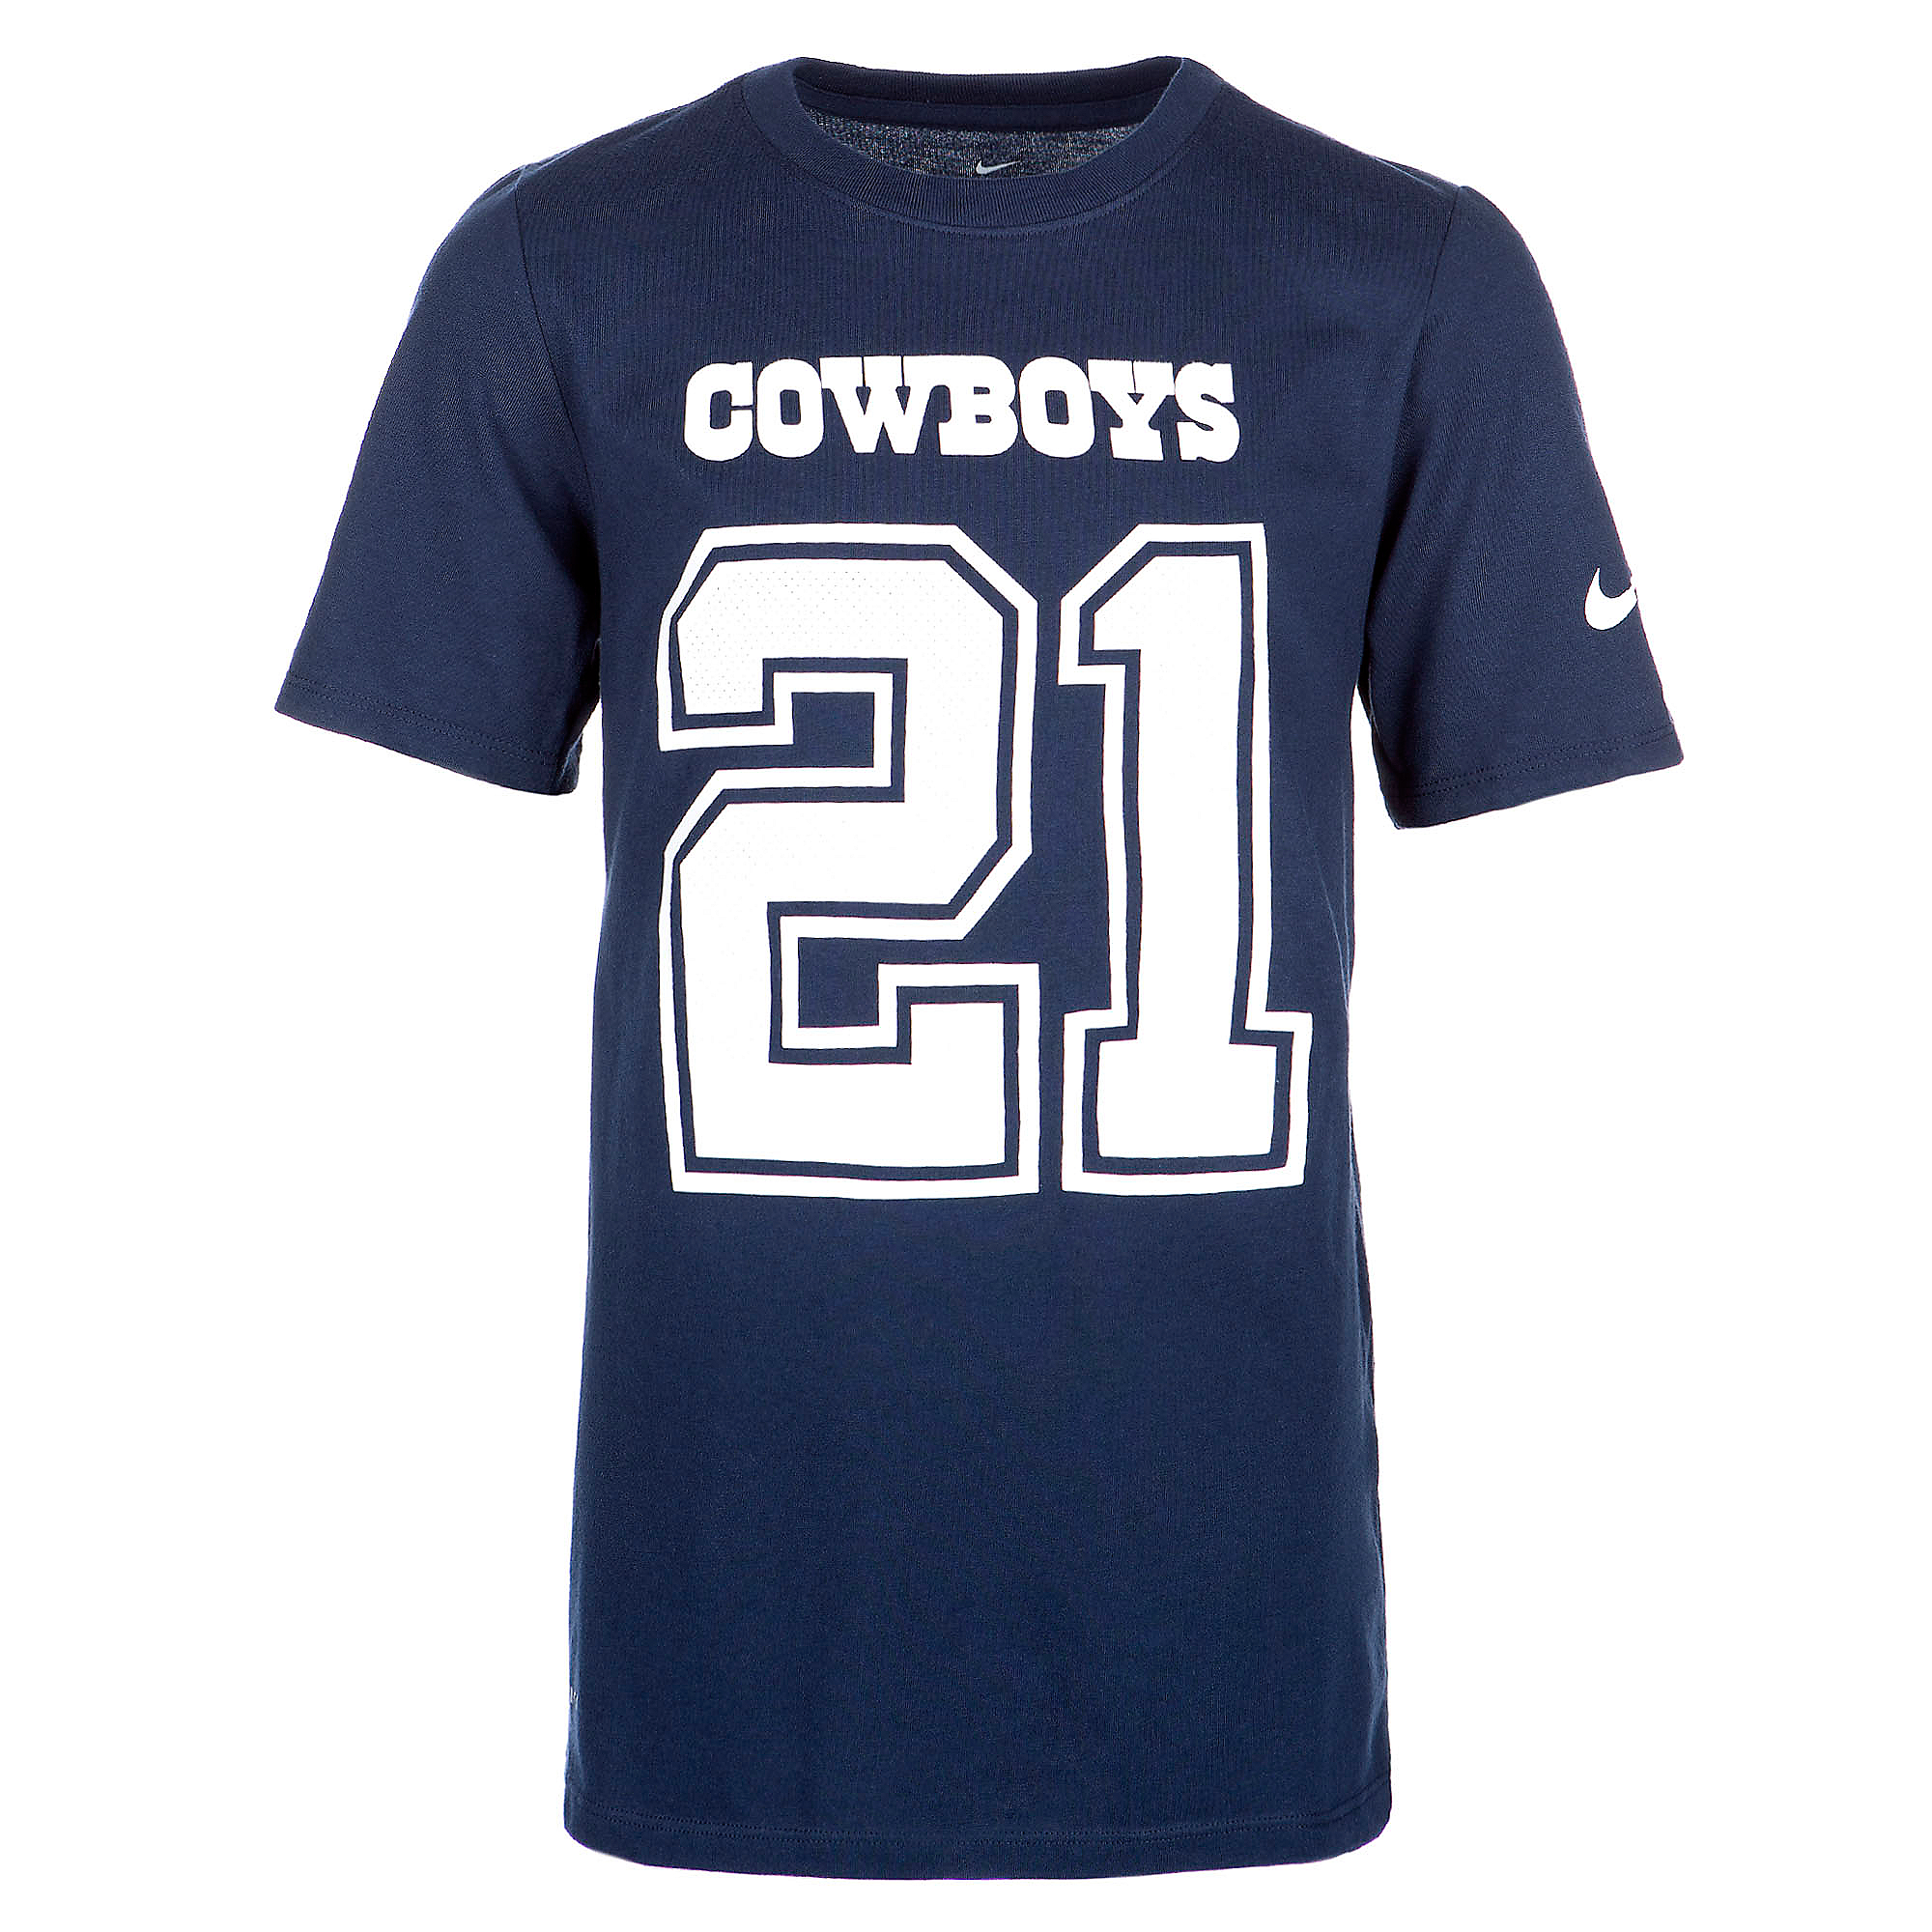 Dallas Cowboys Youth Ezekiel Elliott #21 Nike Player Pride 2 Tee